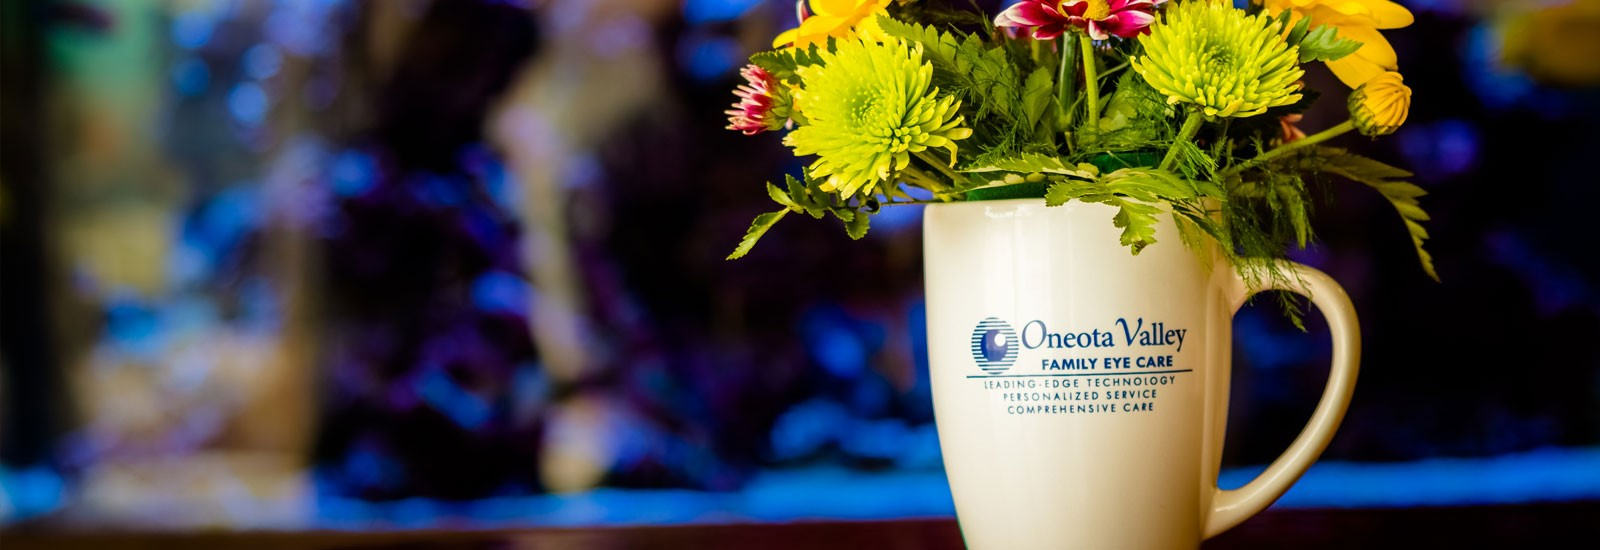 Oneota Family Eye Care